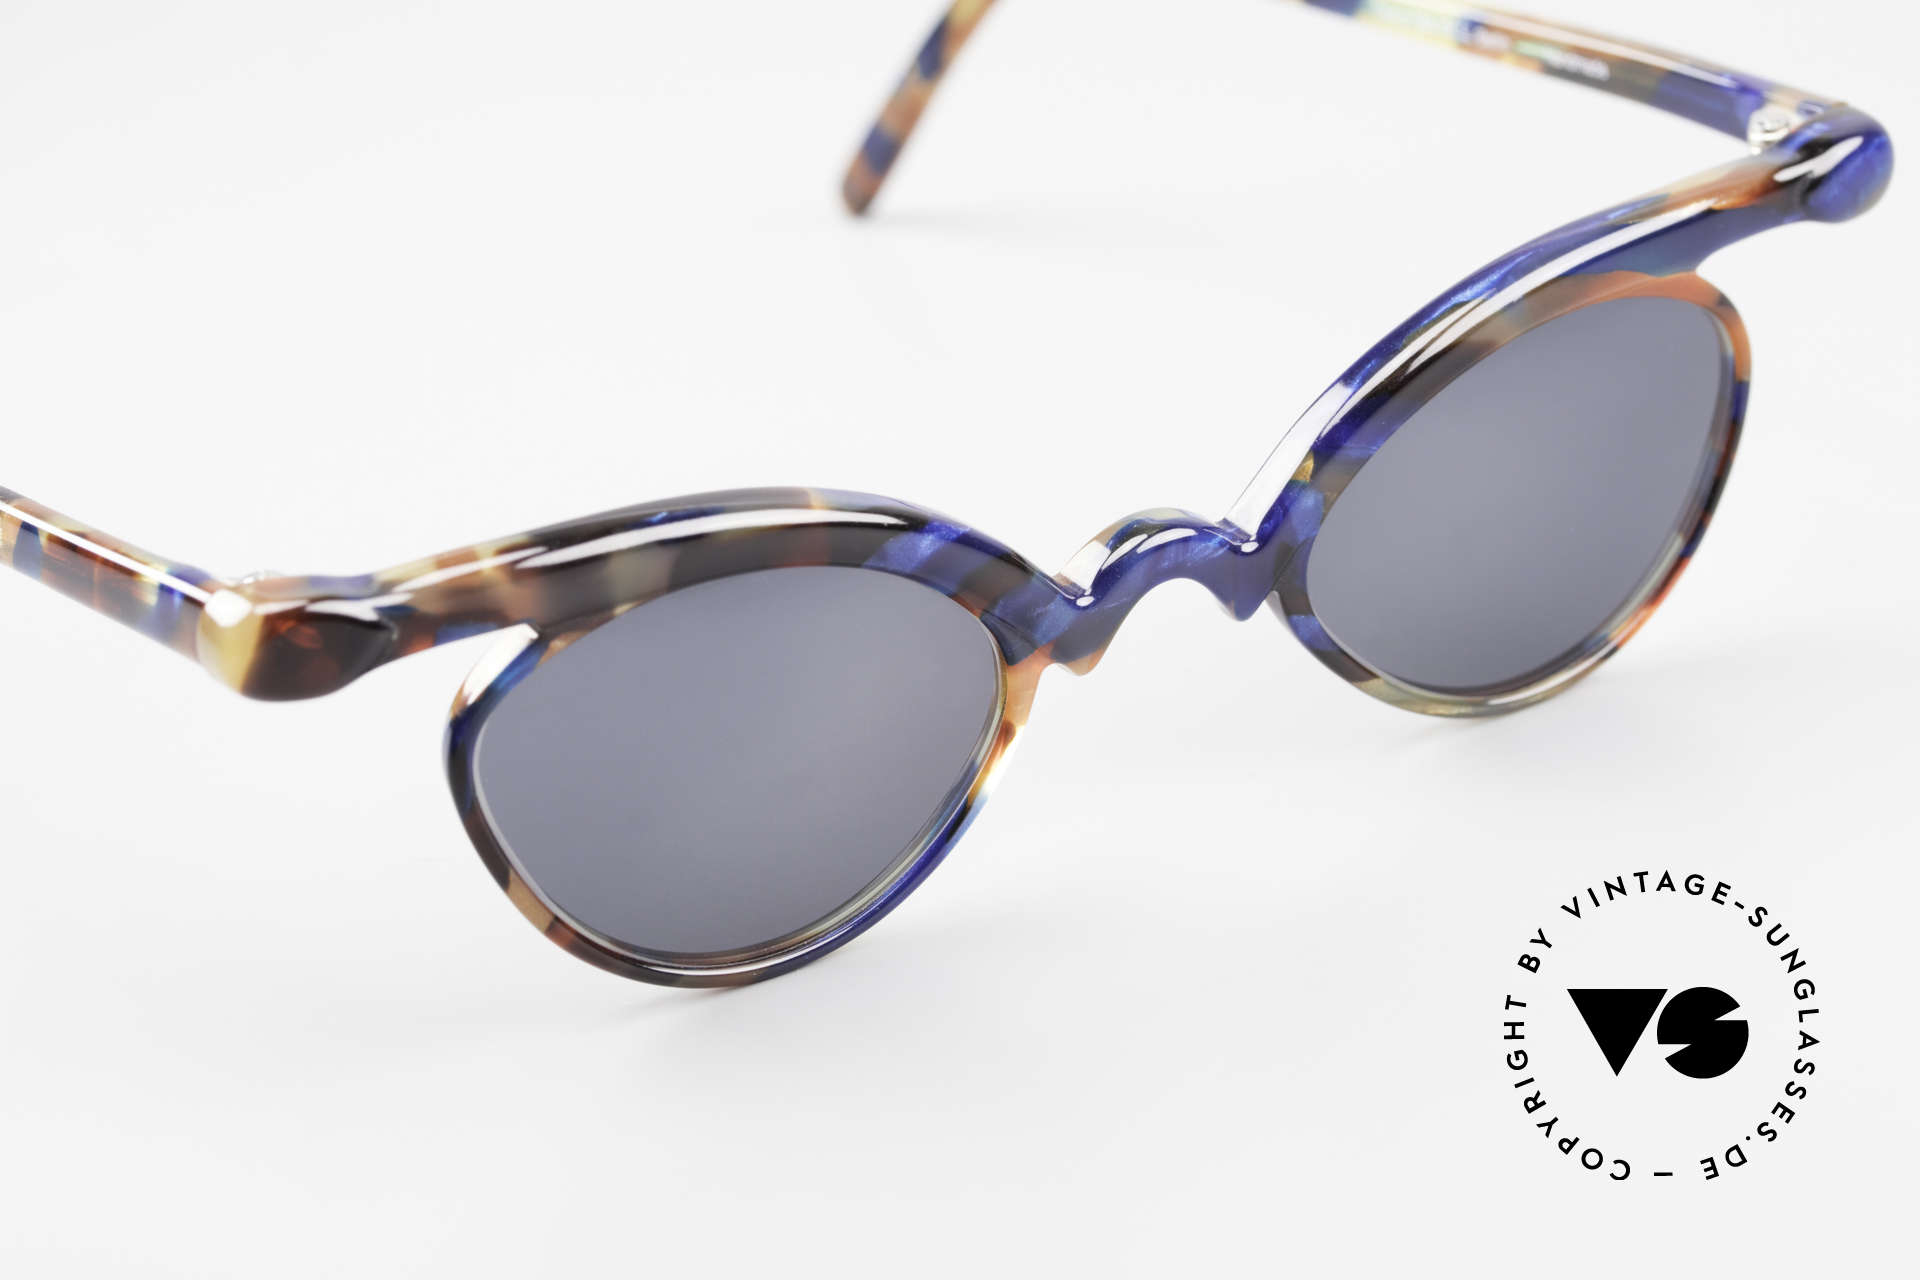 Design Maske Berlin Niobe Artful 90's Ladies Sunglasses, limited-lot production from Berlin, collector's item!, Made for Women